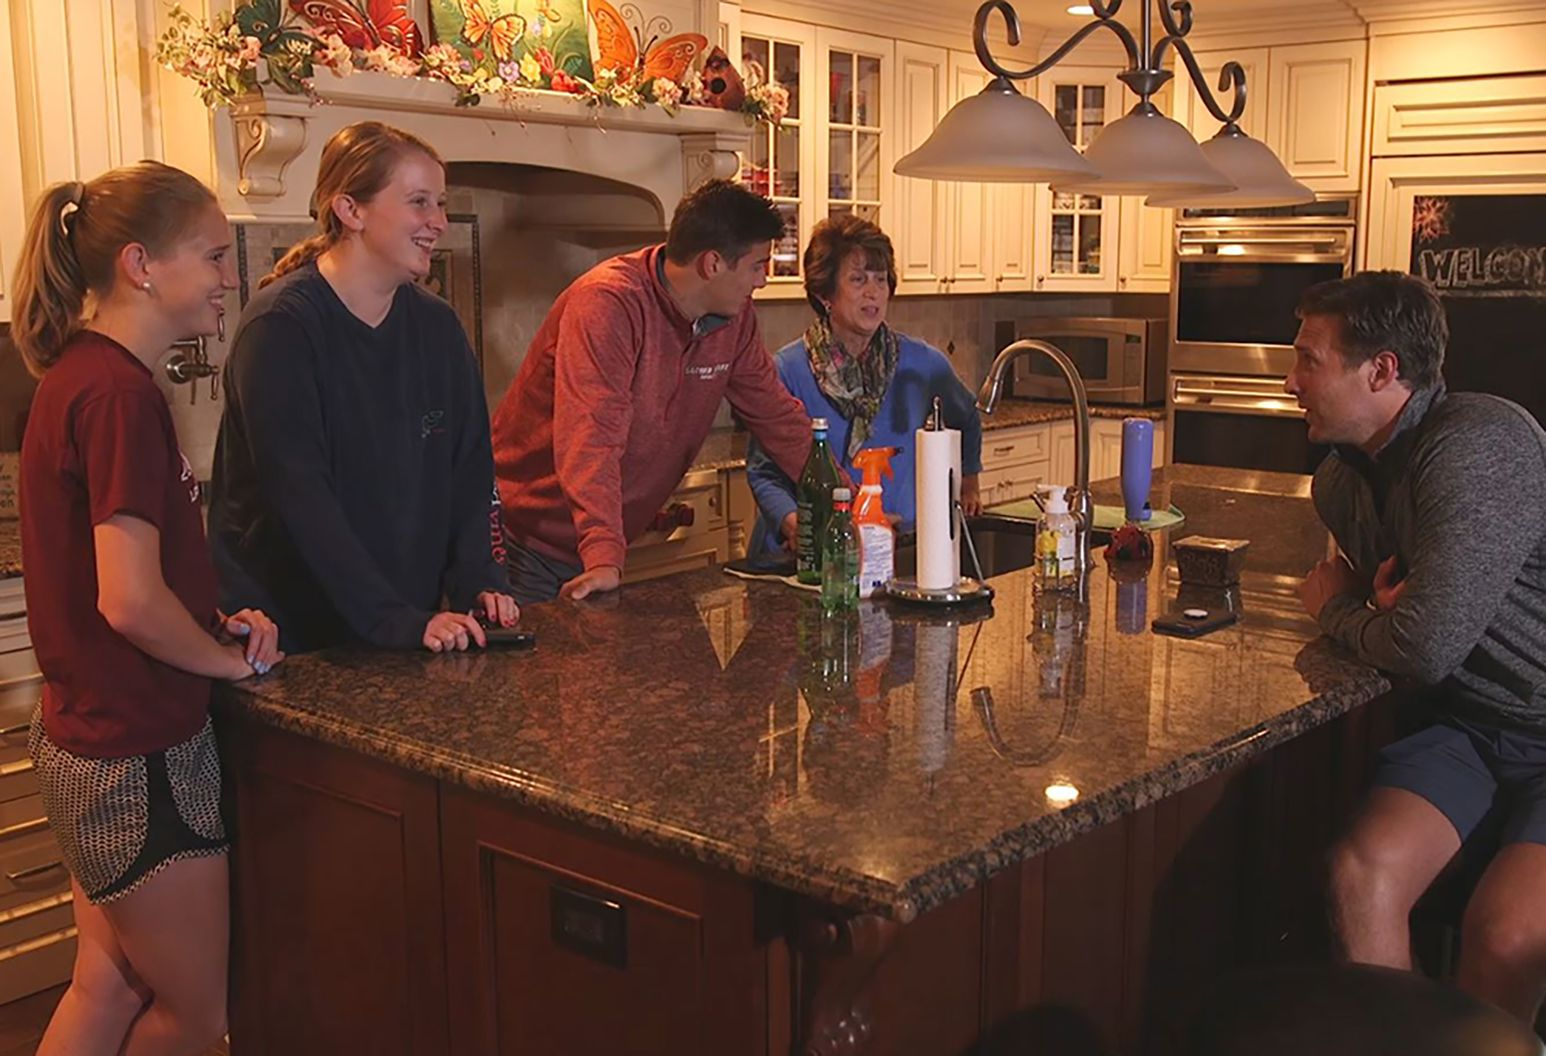 A family of five stands around a kitchen counter laughing and chatting.